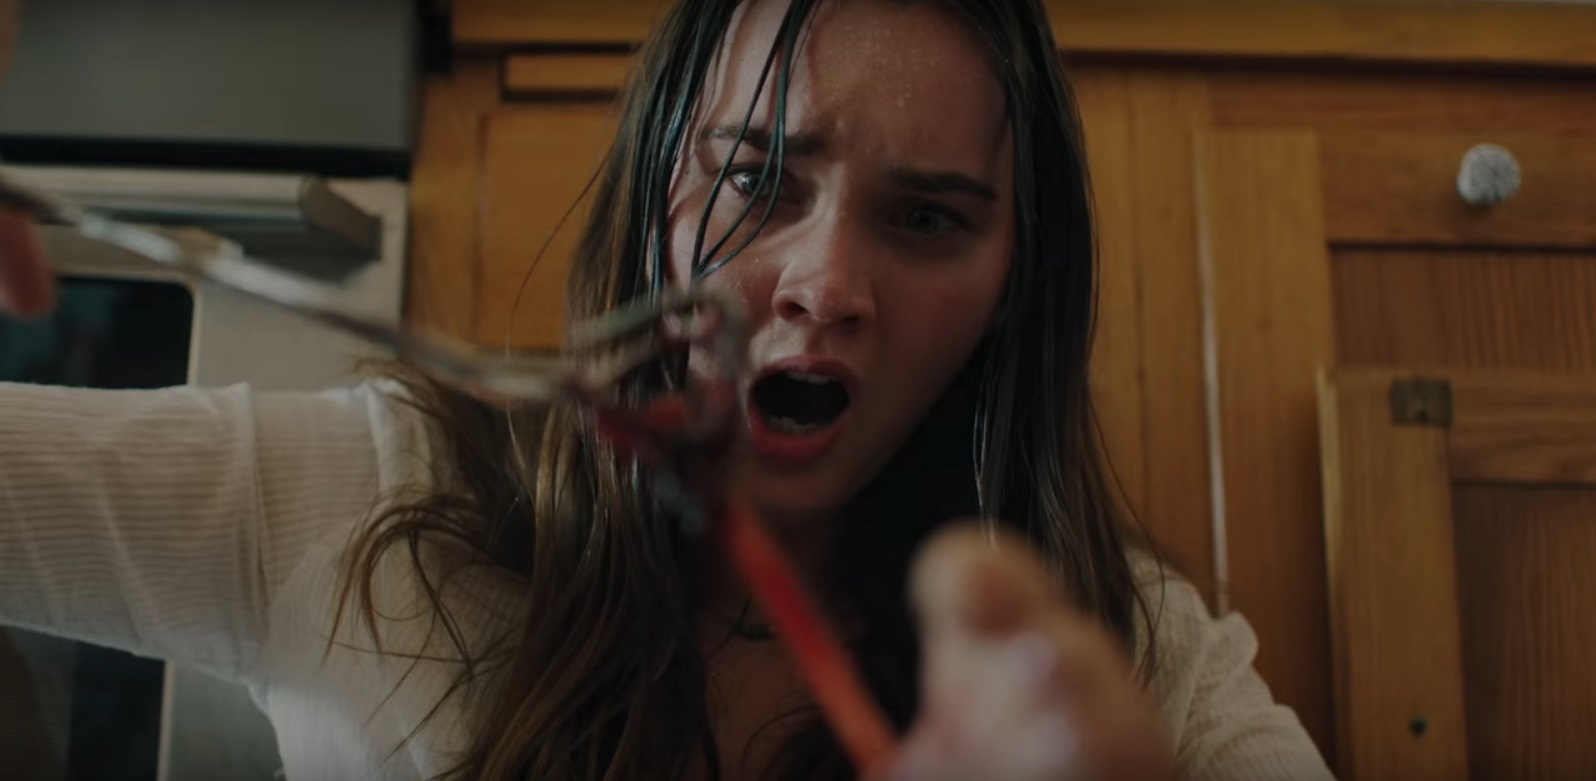 Liana Liberato extracts the parasite from her foot in The Beach House (2019)